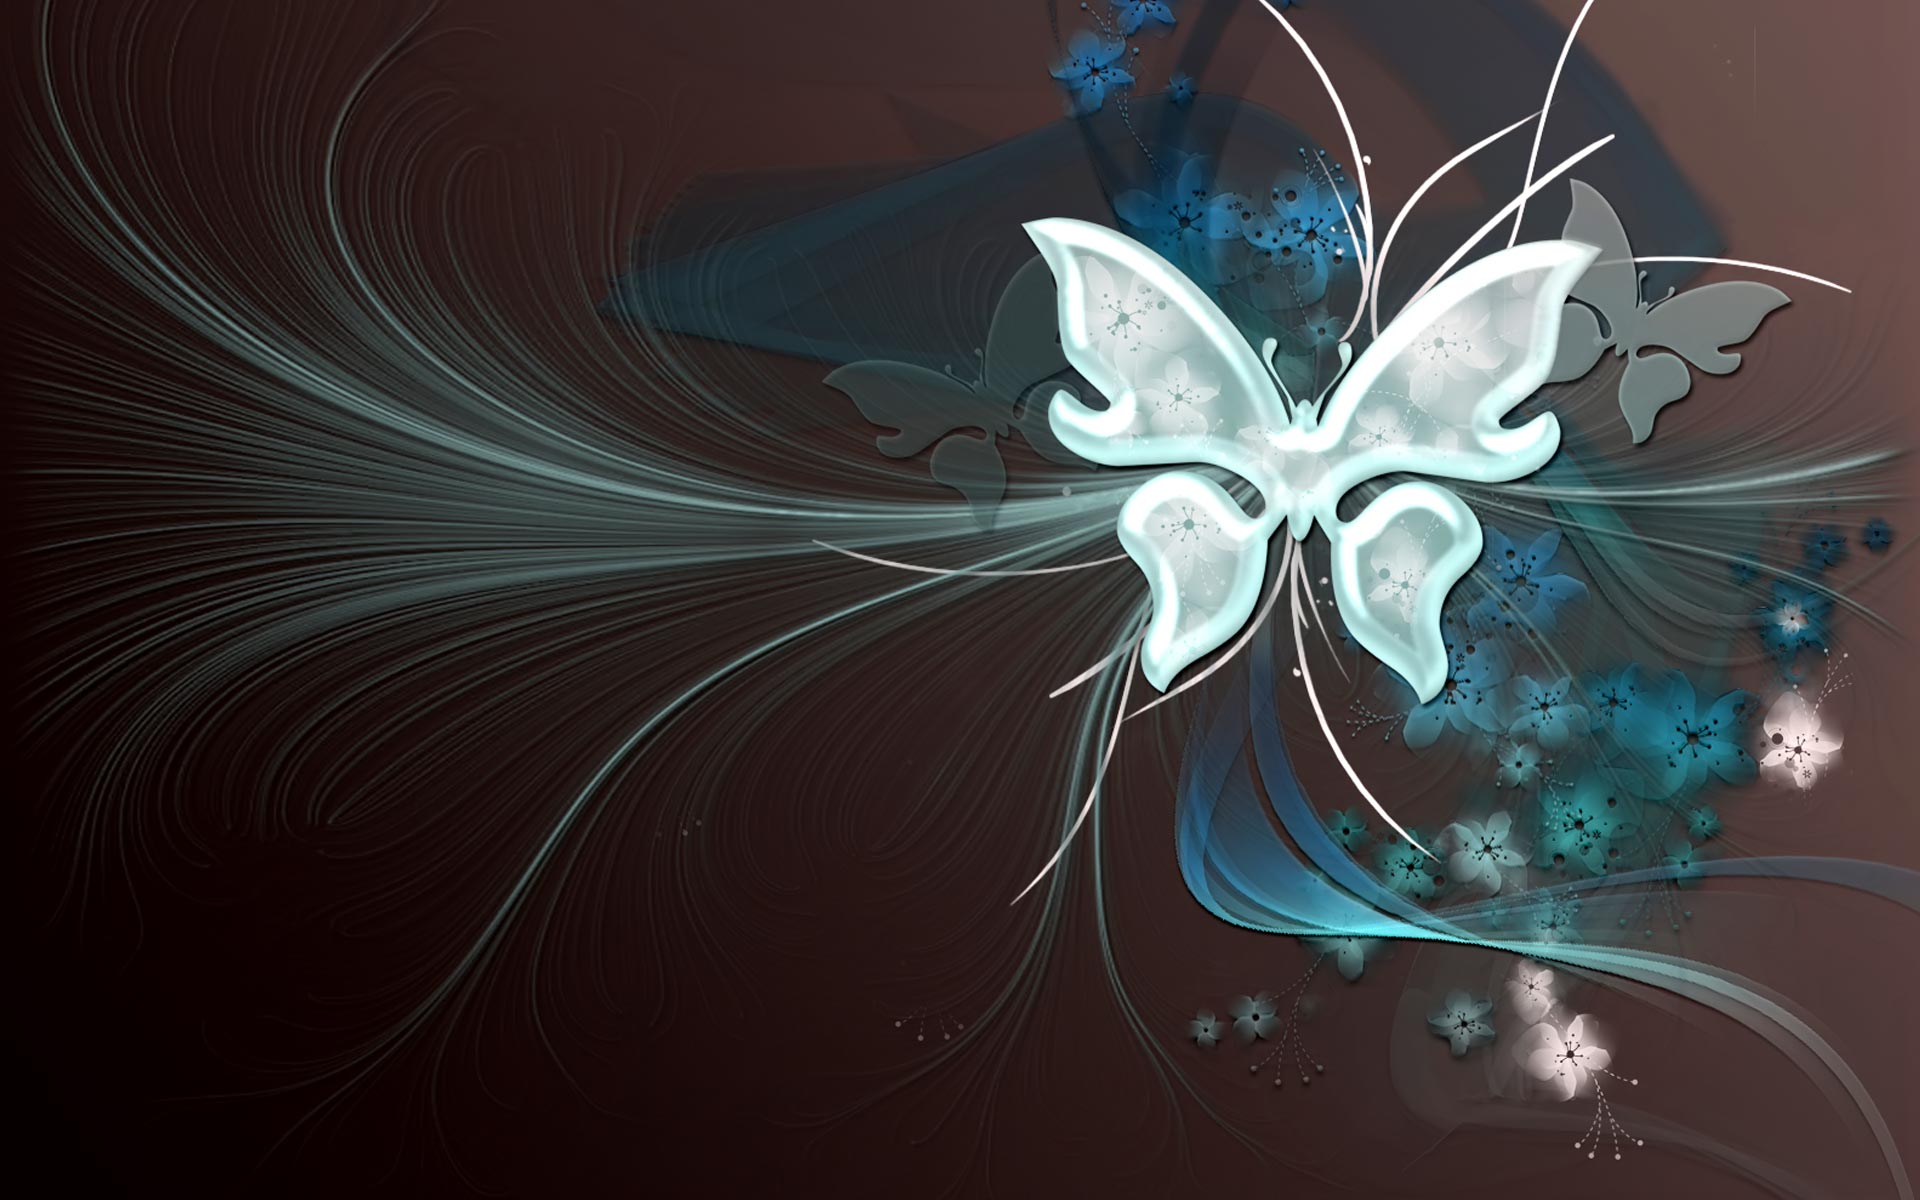 Pink butterfly vector background hd wallpapers pink butterfly vector - Butterfly Vector Backgrounds Hd Wallpaper And Make This Wallpaper For